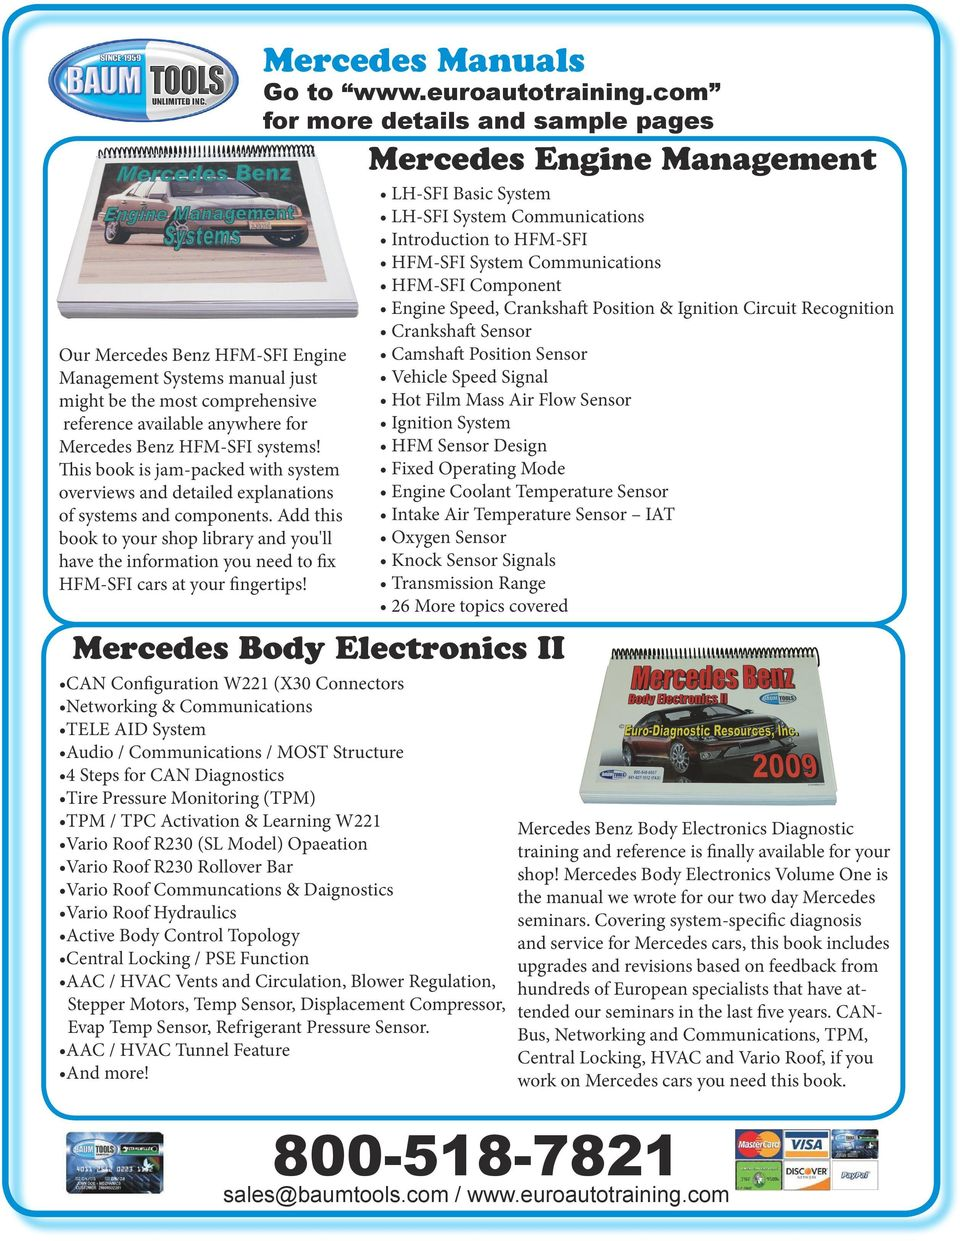 Diagnostic Manuals Engine Management Systems 396 Pages Data Blocks E36 Zke Wiring Diagram Add This Book To Your Shop Library And Youll Have The Information You Need